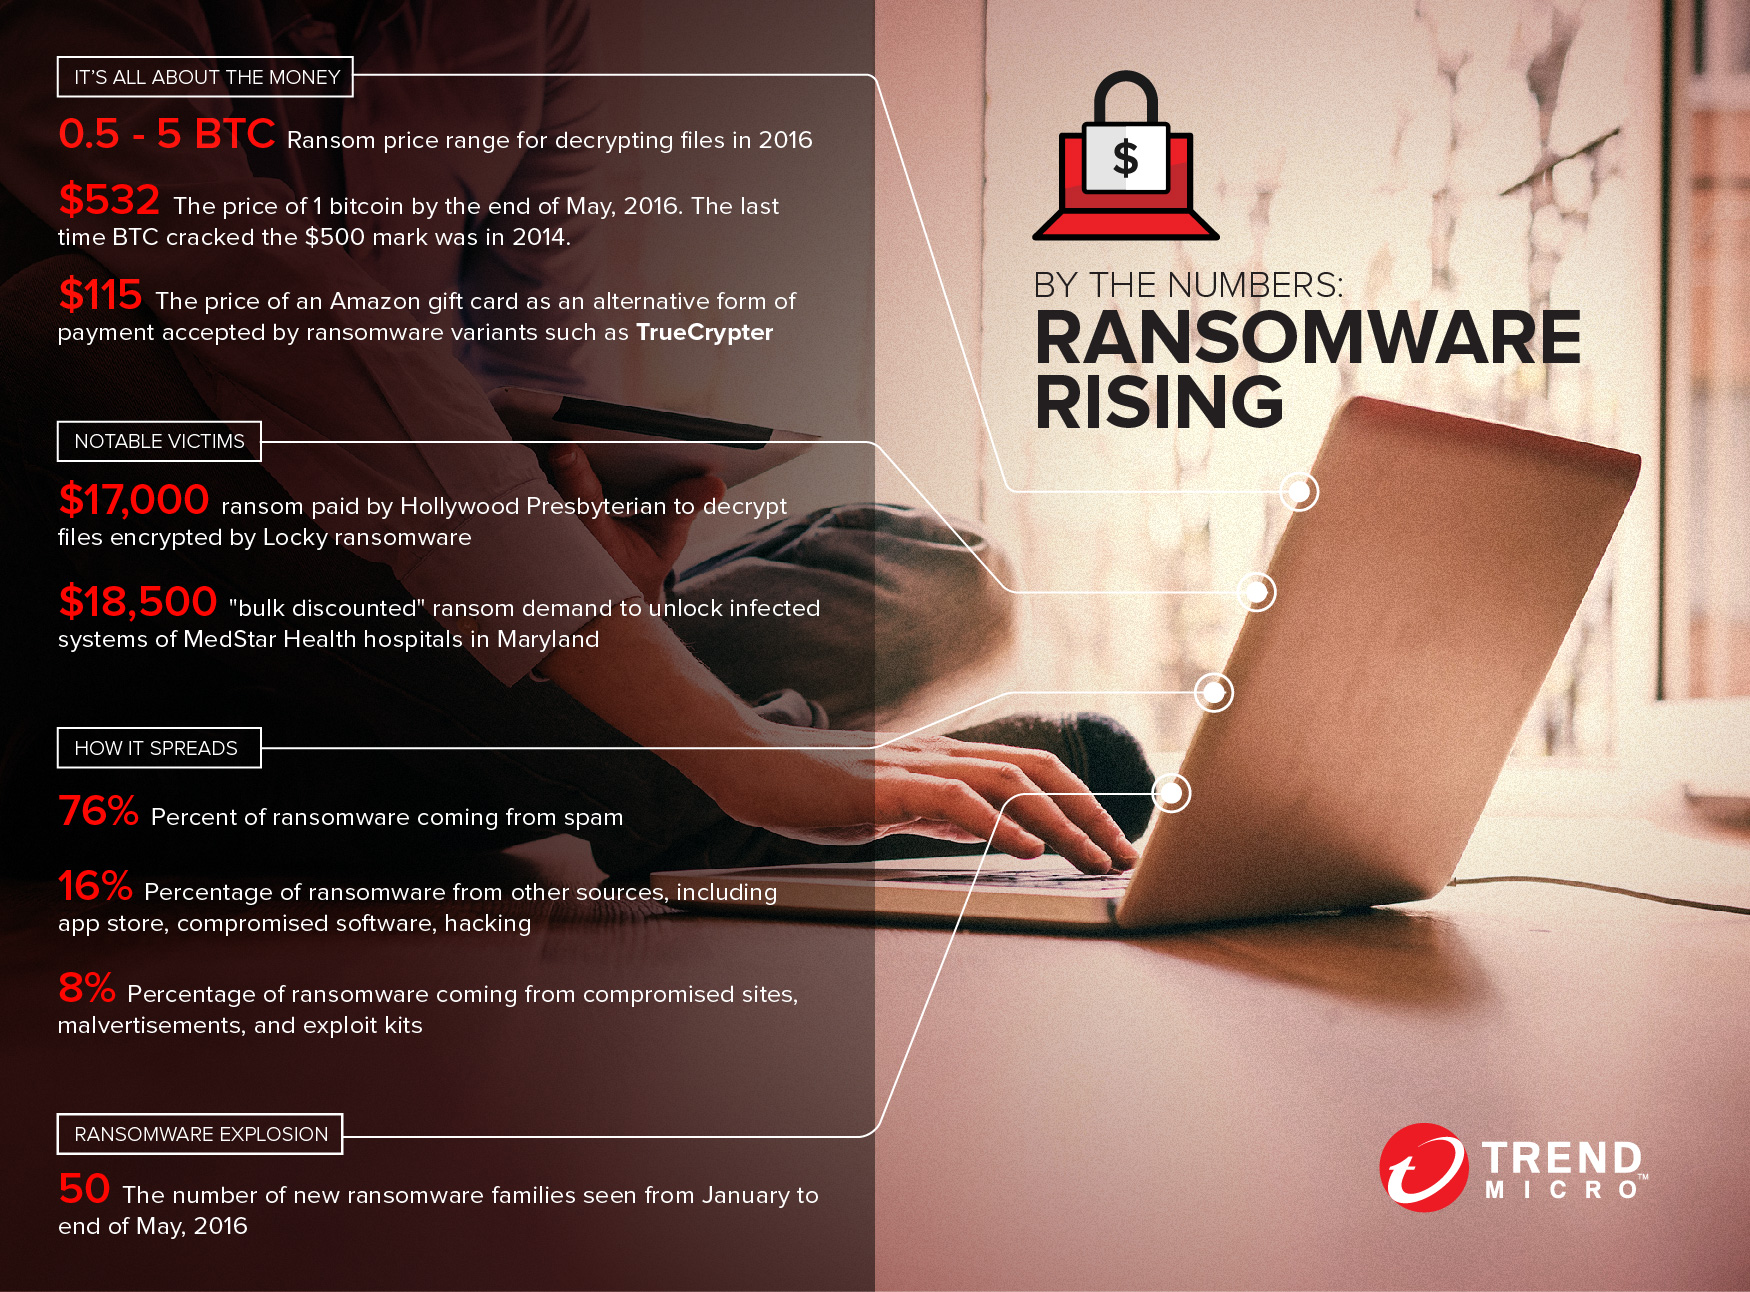 http://documents.trendmicro.com/images/TEx/infographics/by-the-numbers-ransomware-rising.jpg